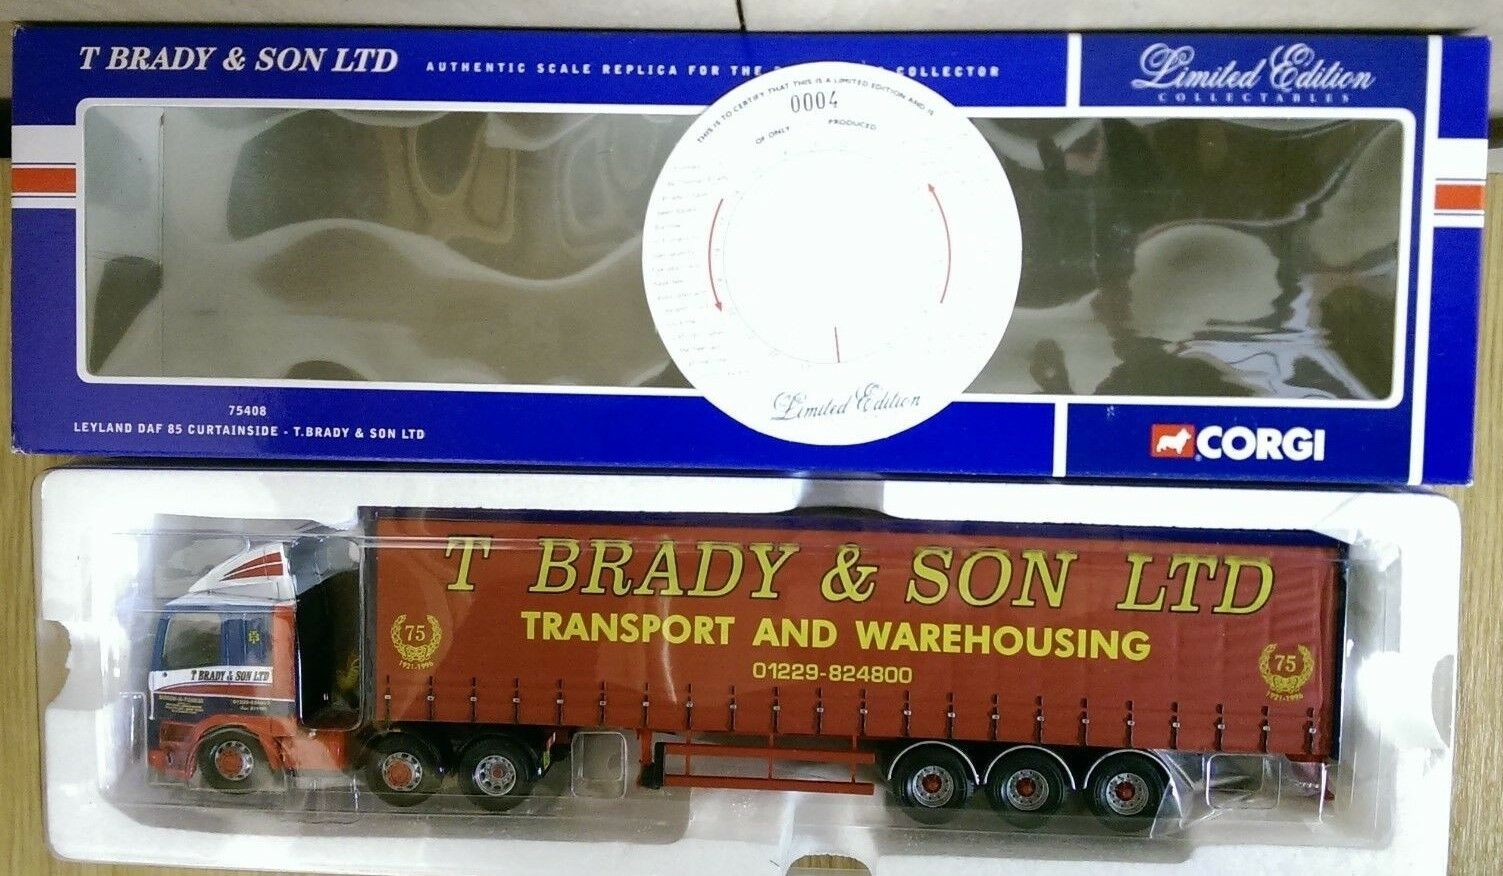 Corgi 75408 Leyland DAF 85 Curtainside T. Brady & Son Ltd Ed 0004 of 2600